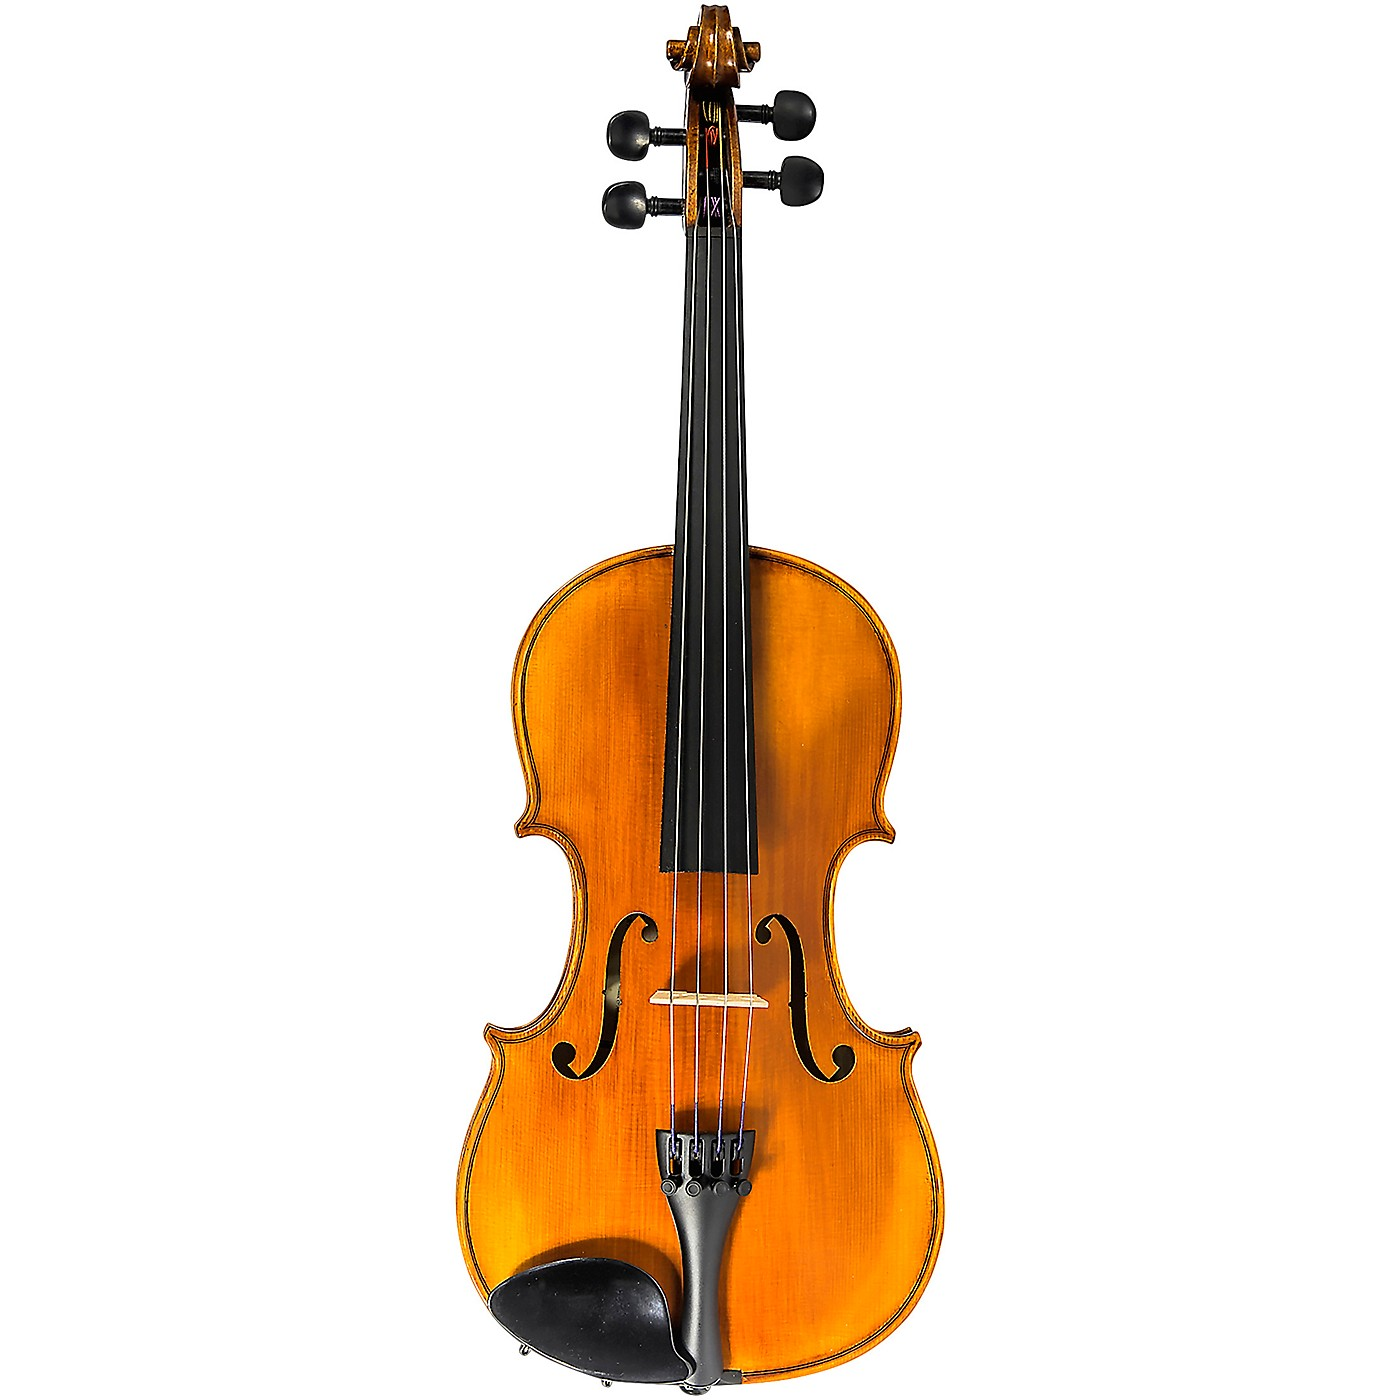 Strobel MA-100 Student Series 16.5 in. Viola Outfit thumbnail